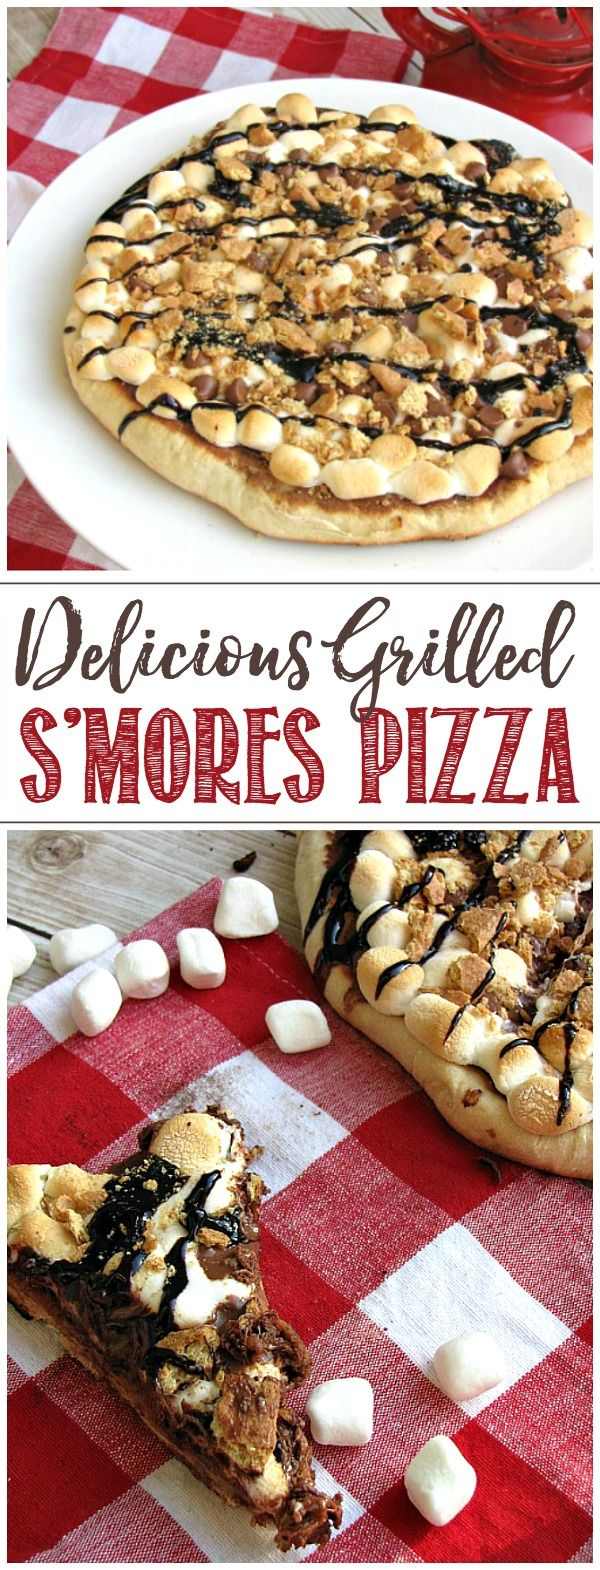 S'mores Pizza This delicious grilled s'mores pizza gives you all of that s'mores taste right in your backyard. It will definitely become a summer favorite!